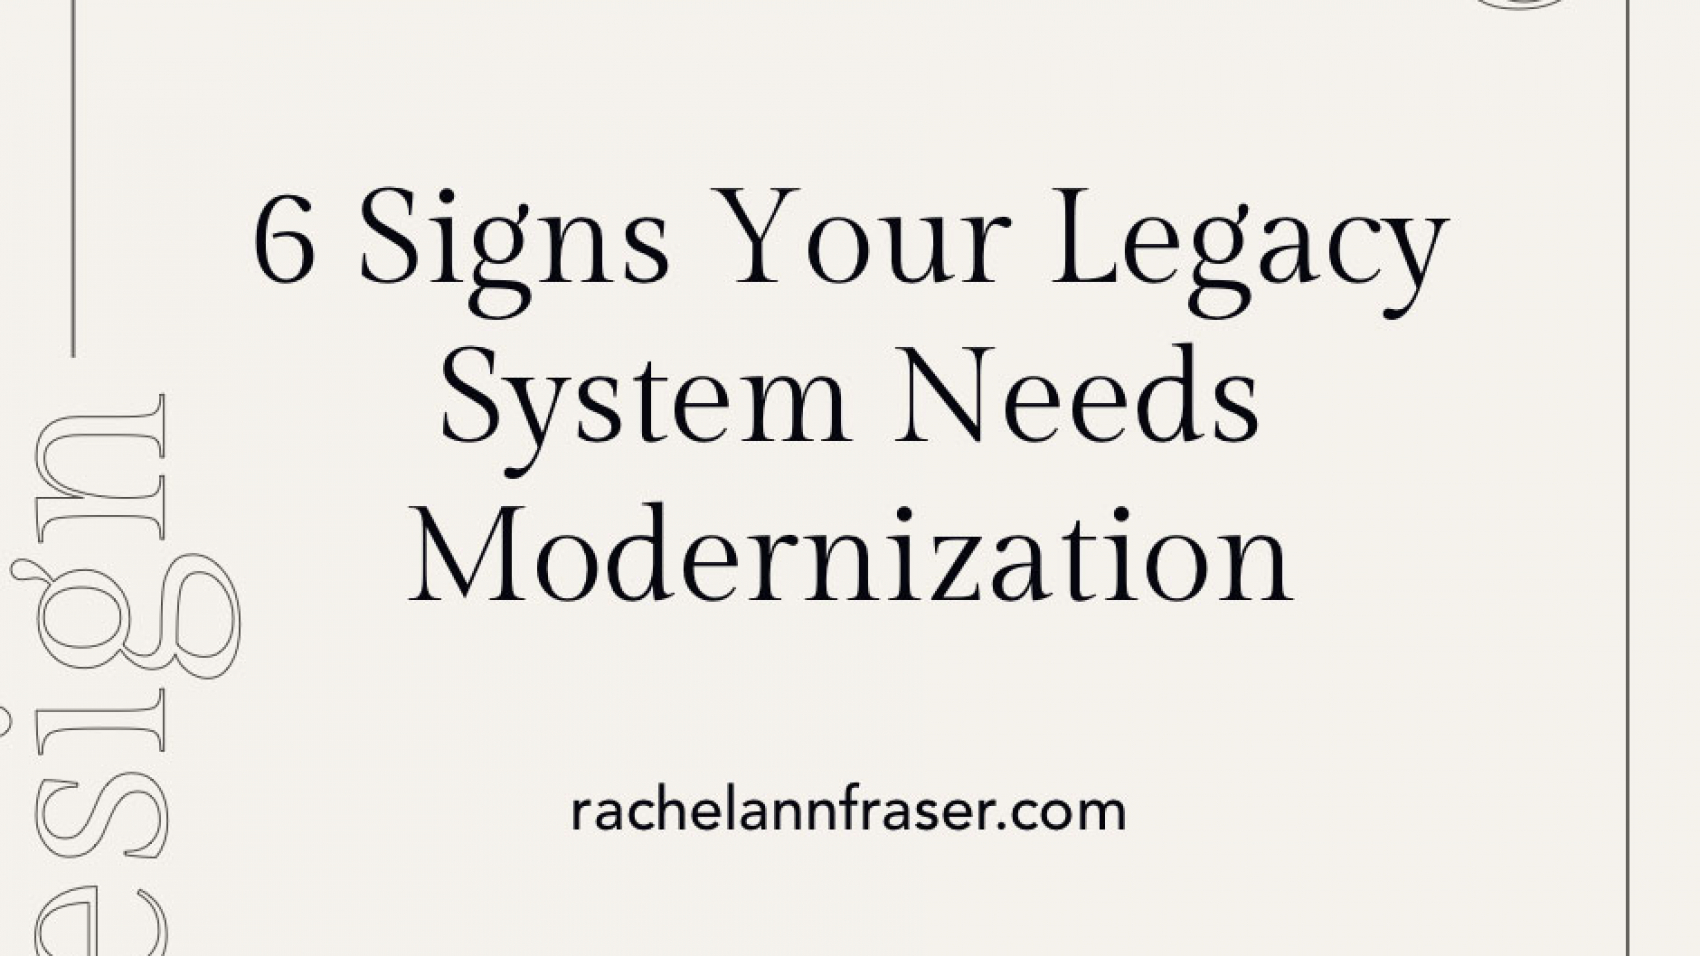 6 Signs Your Legacy System Needs Modernization